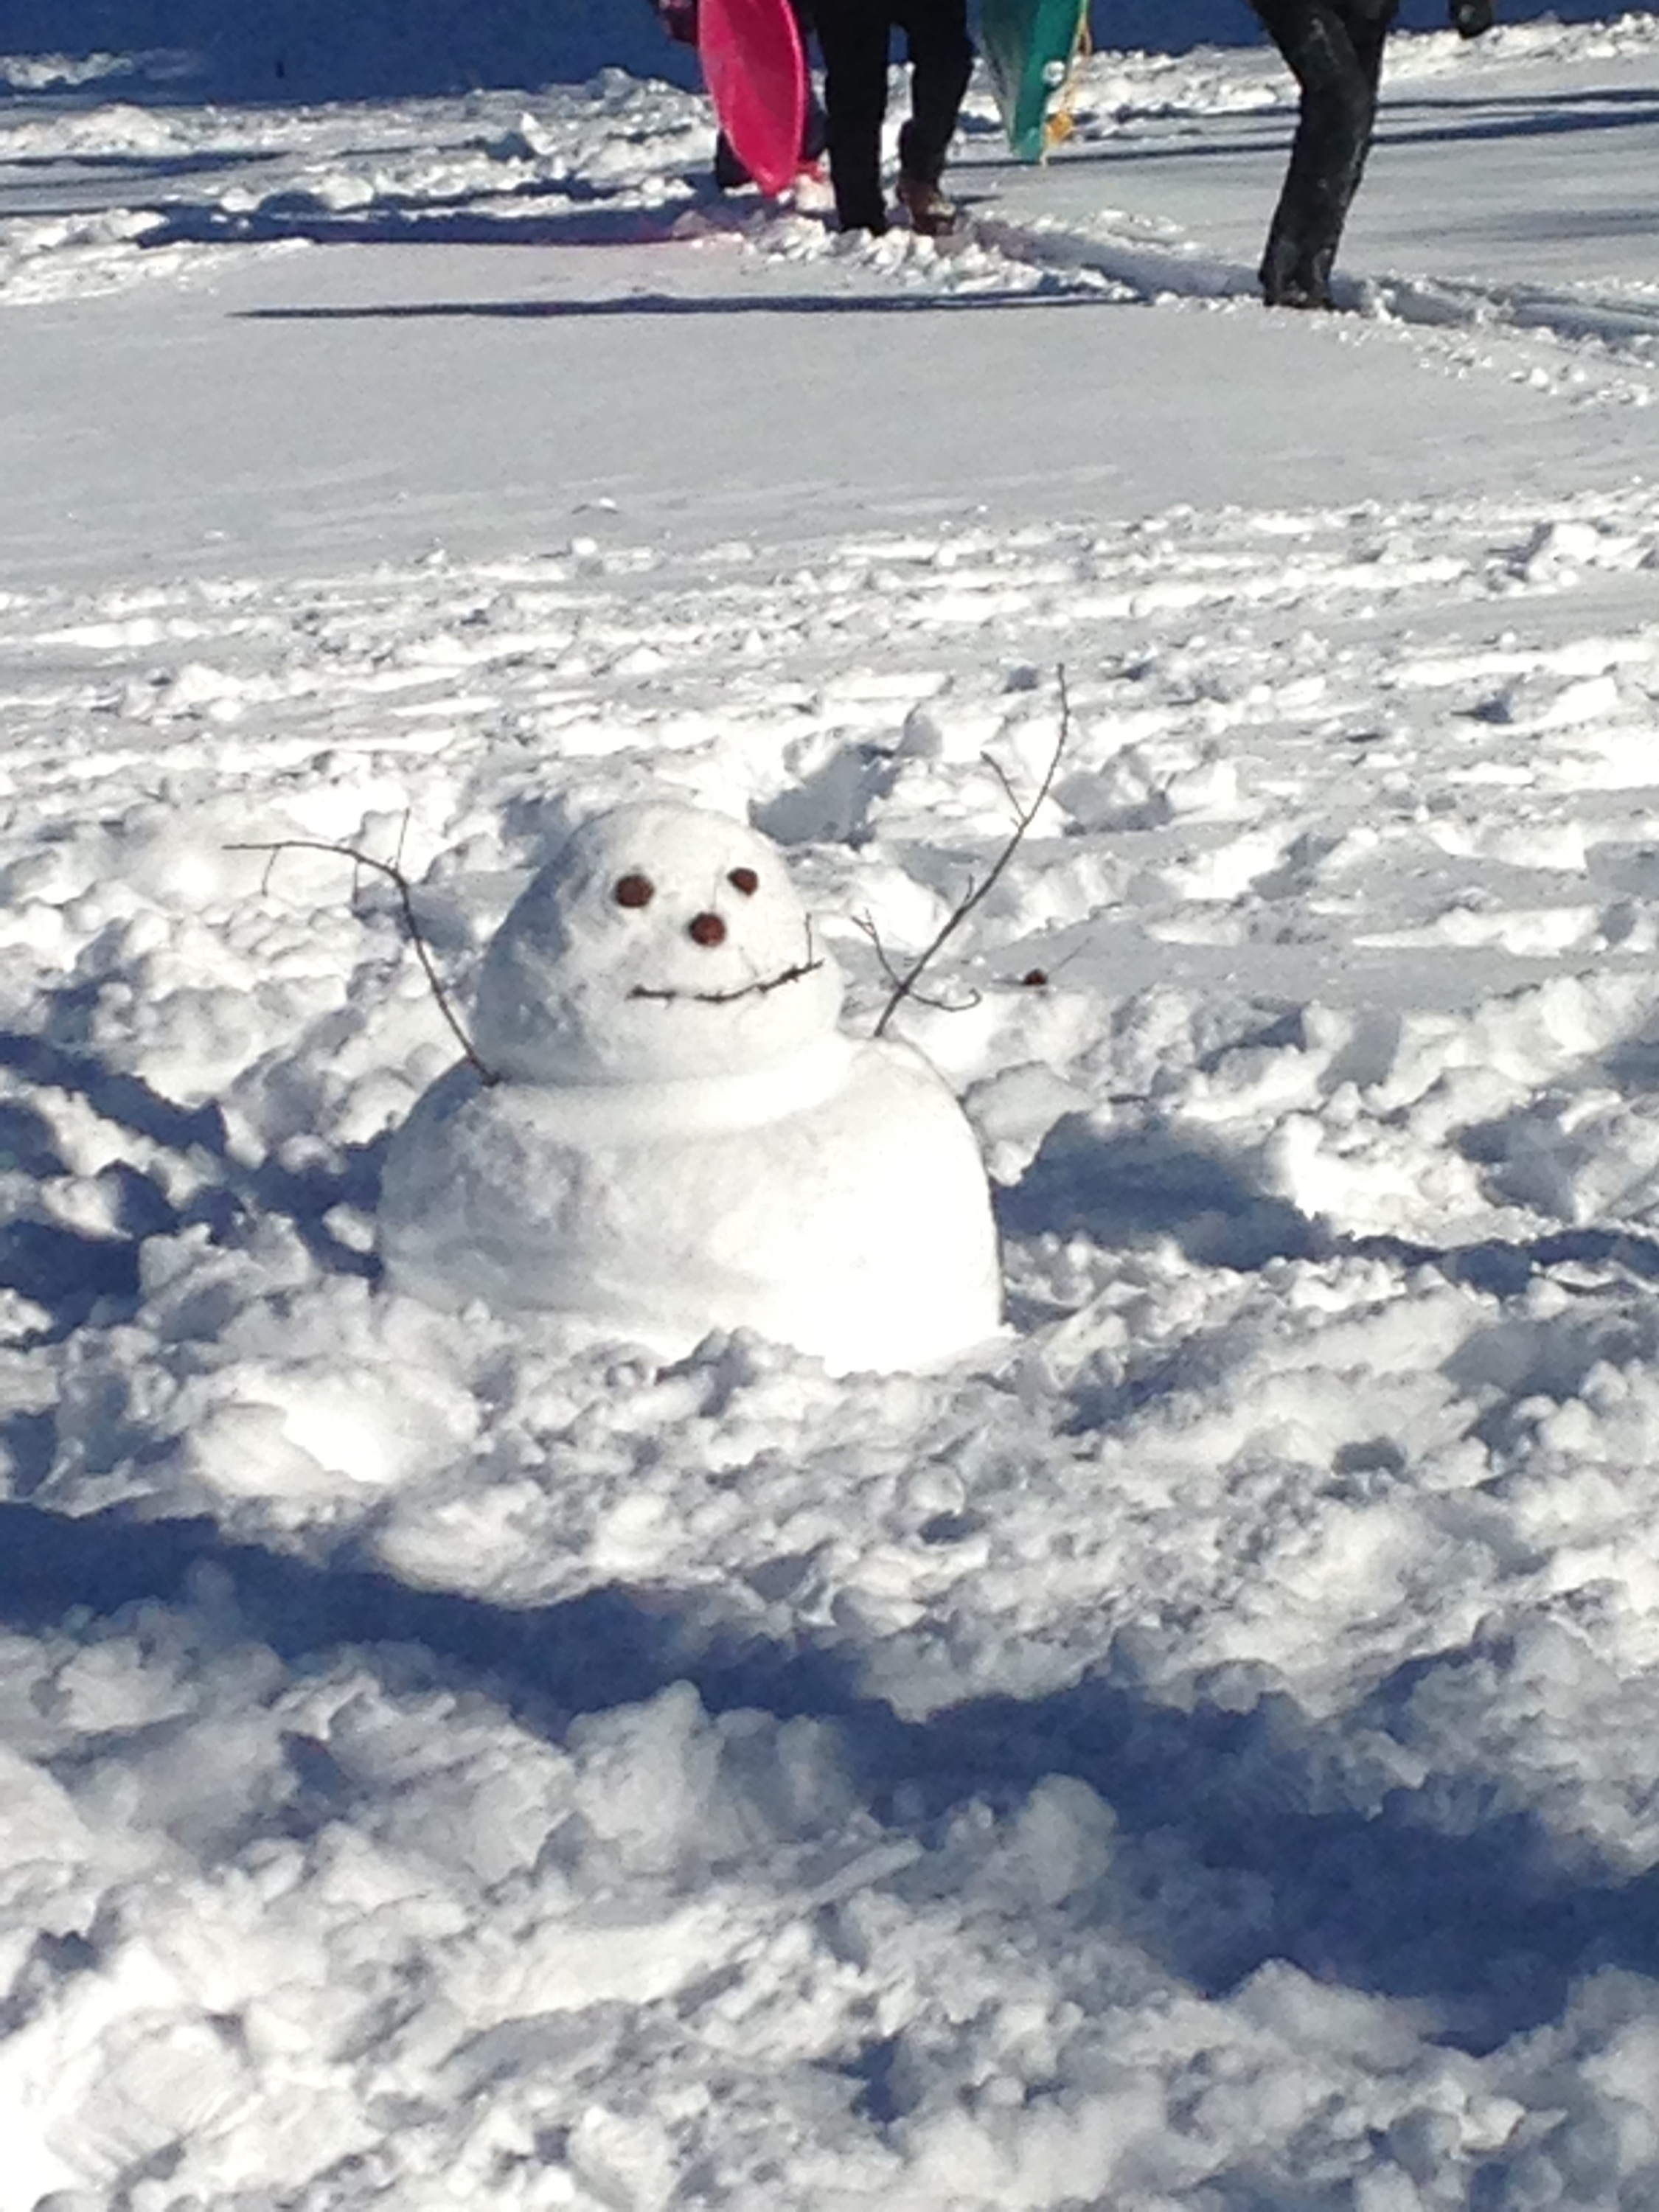 Funny short snowman I found in Inwood Hill Park the day after the blizzard.